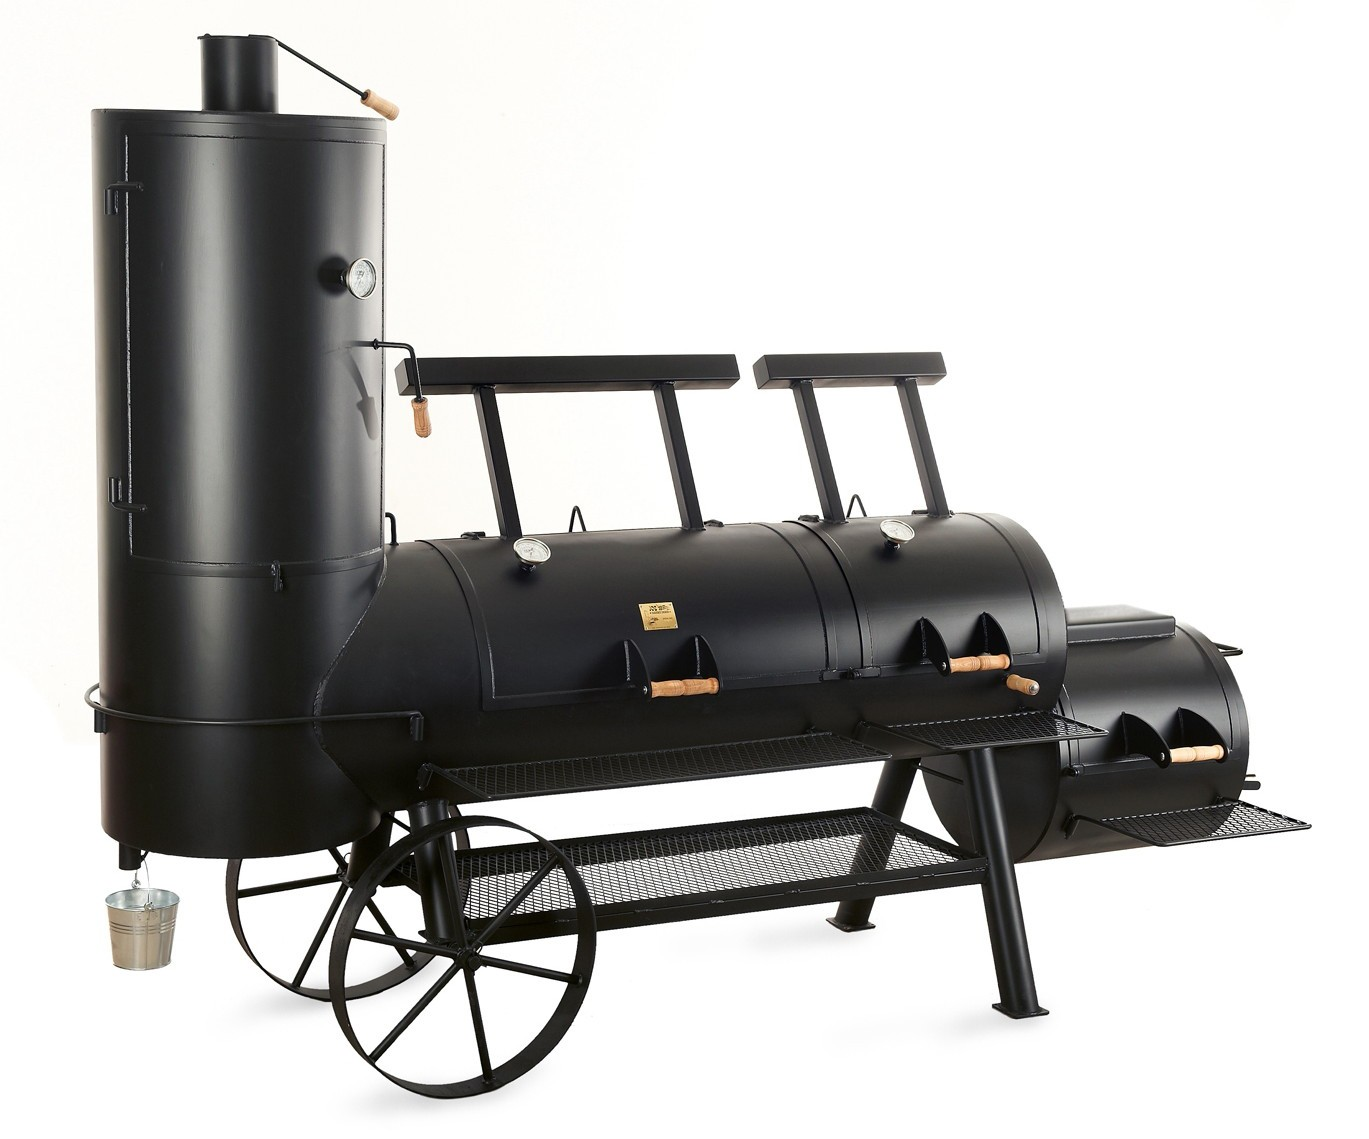 barbeque smoker holzkohle grill joe s 24 extended catering smoker bei. Black Bedroom Furniture Sets. Home Design Ideas